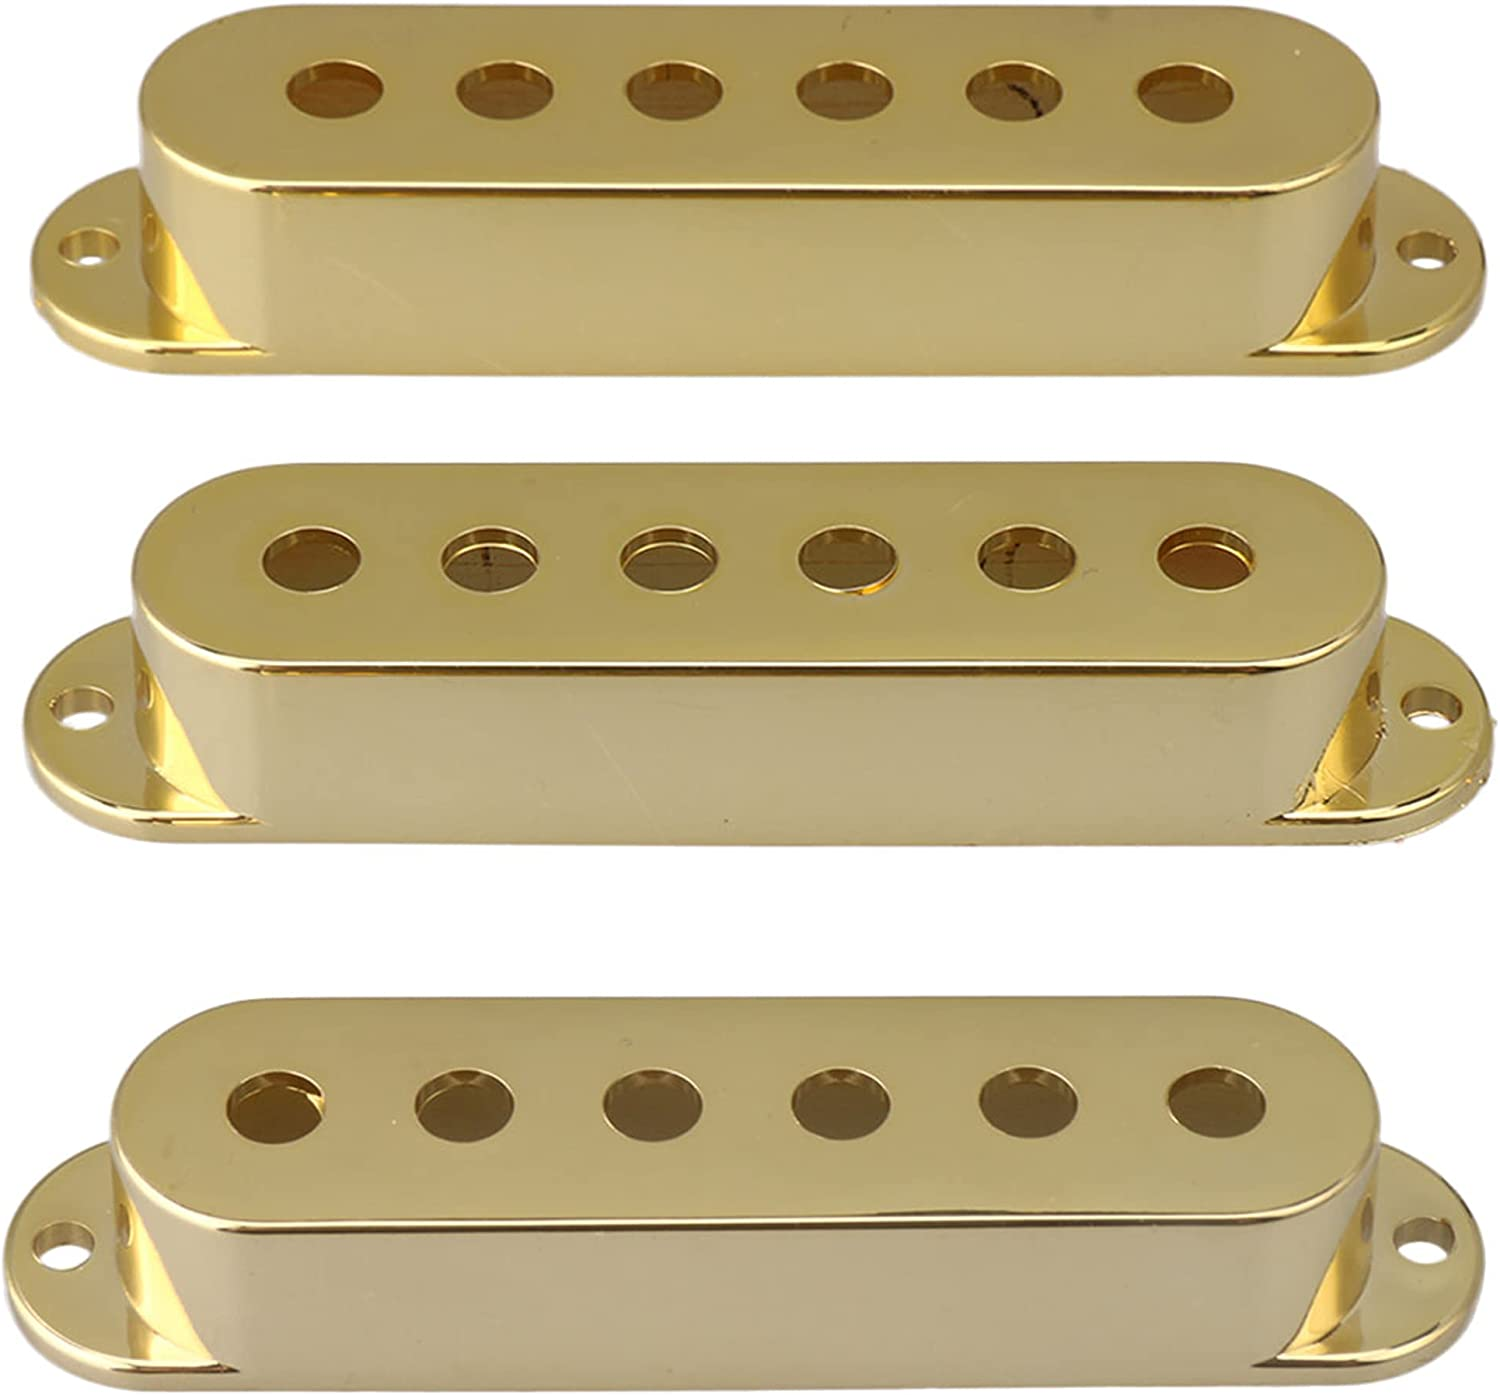 3PCS Single Coil Max 61% OFF Recommendation Guitar Pickup Covers 50 Spacing Electric for 48